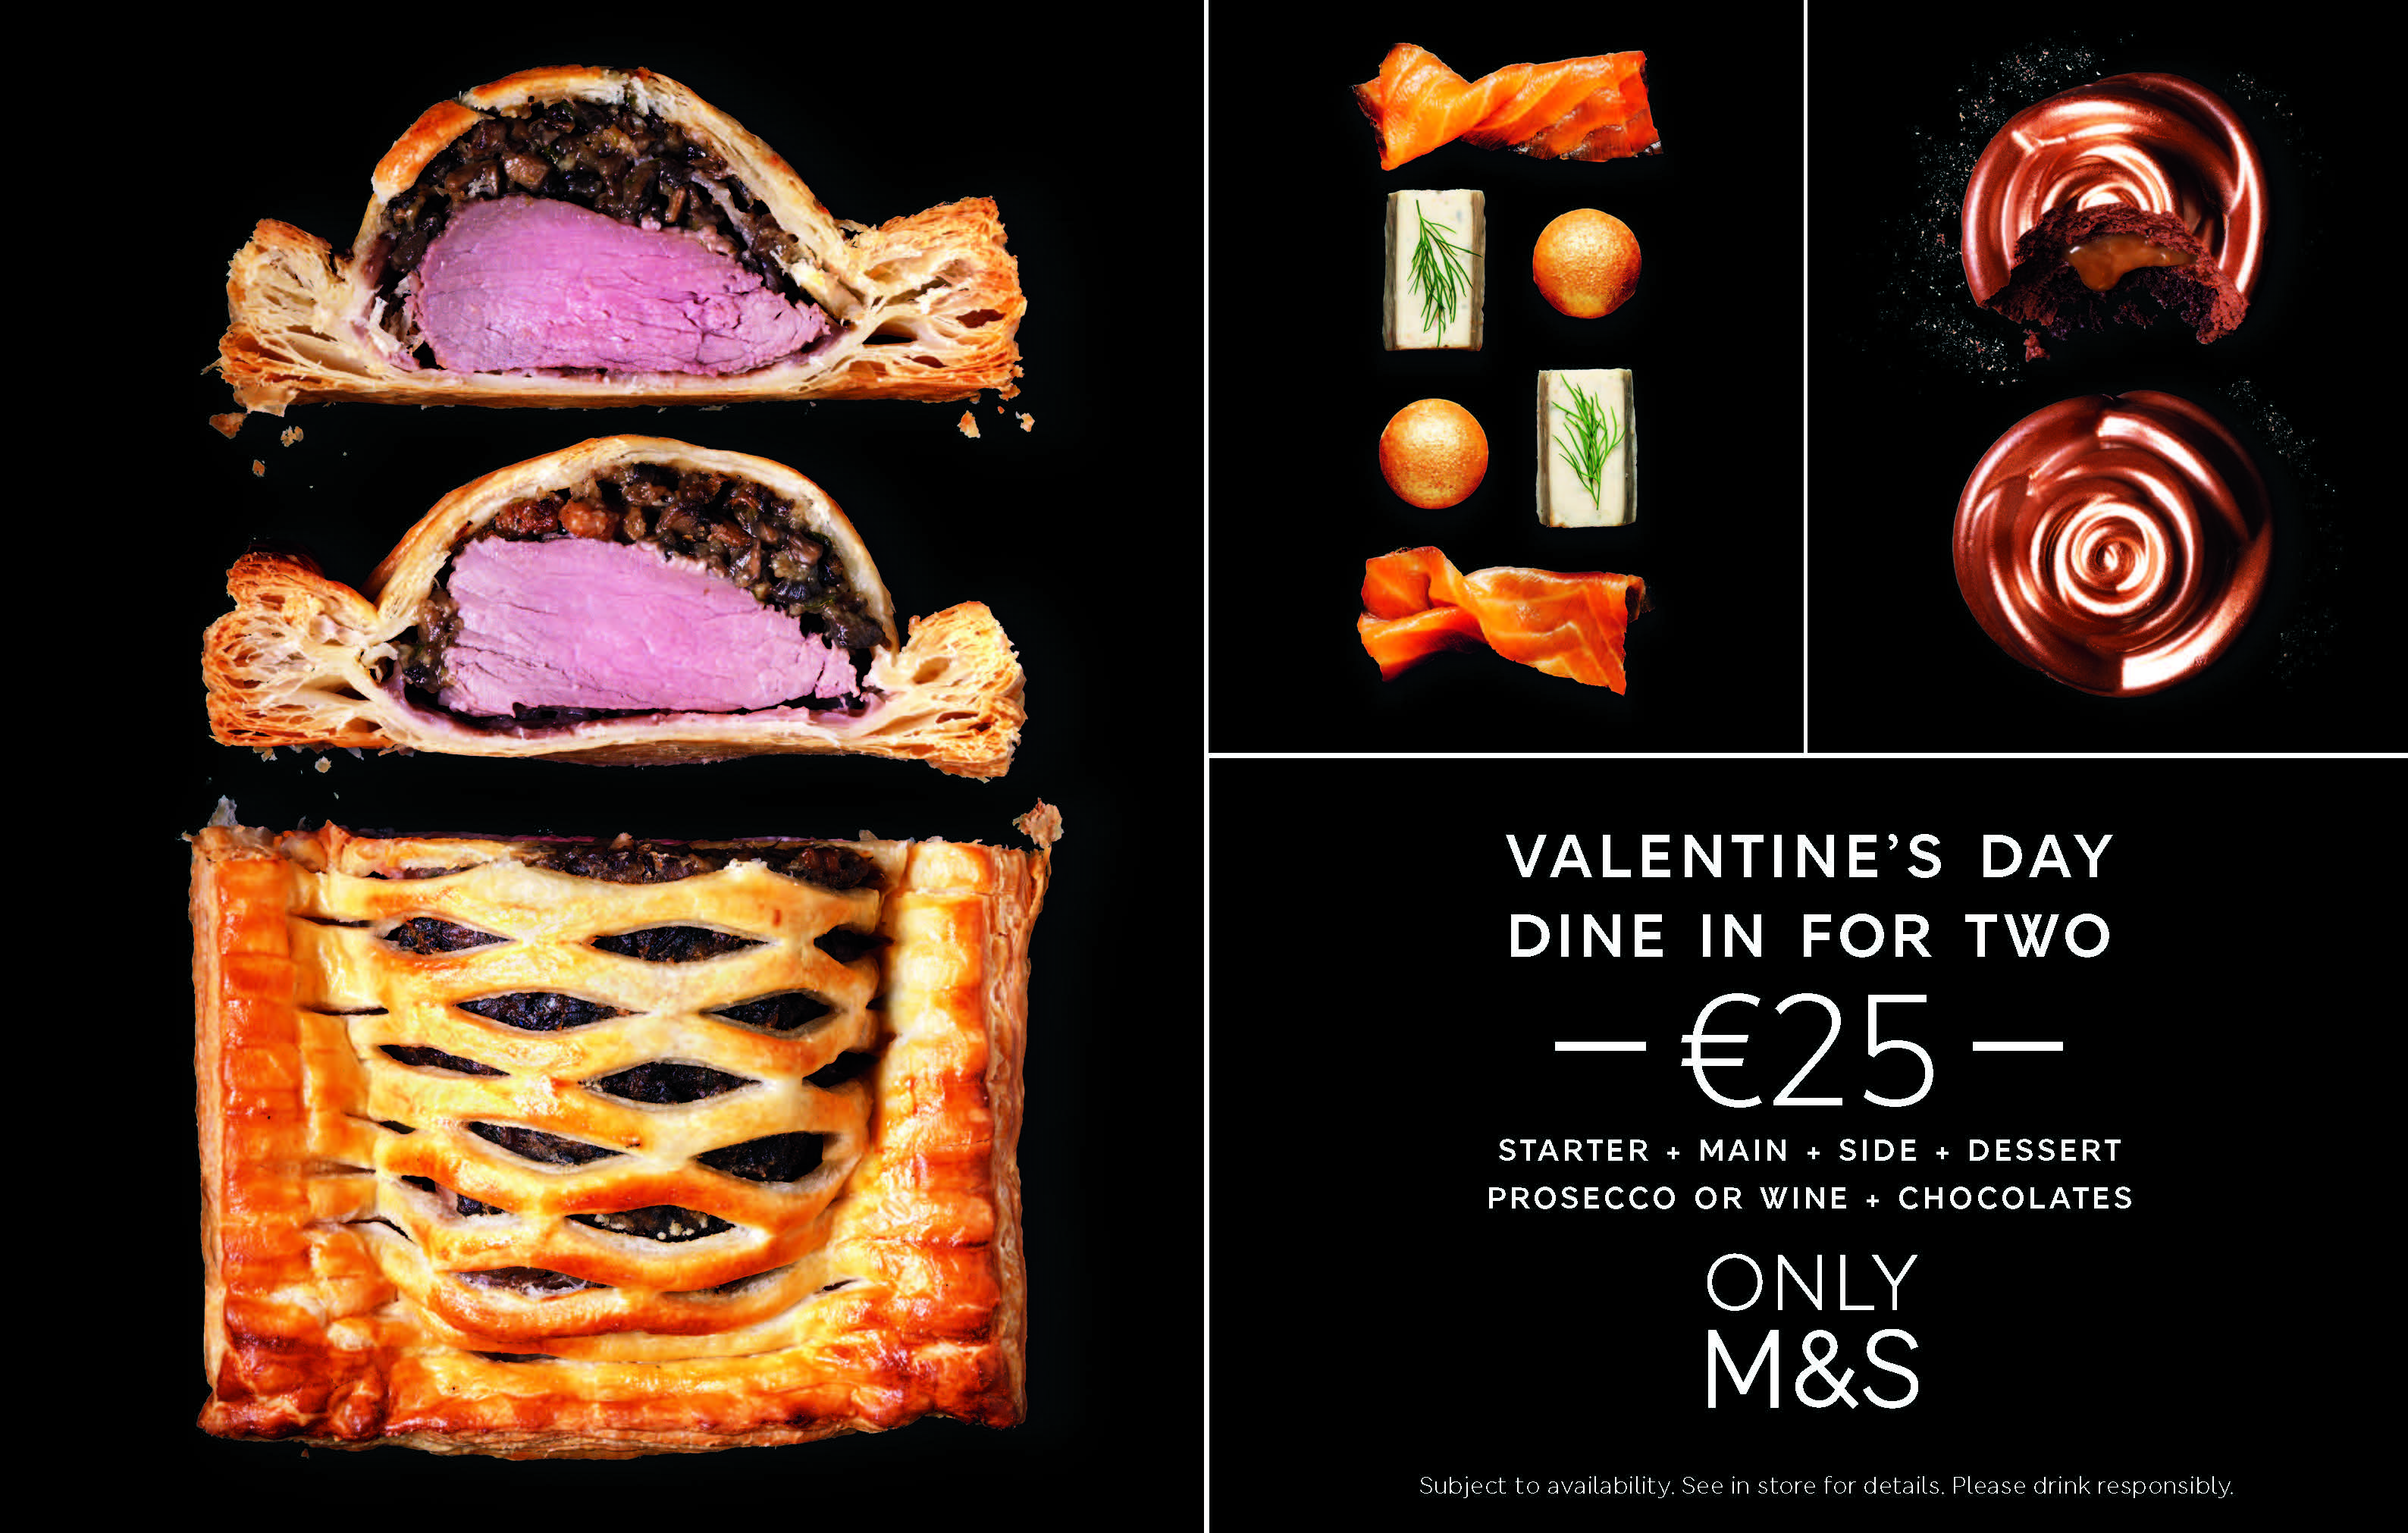 Valentines Day Dine In at M&S